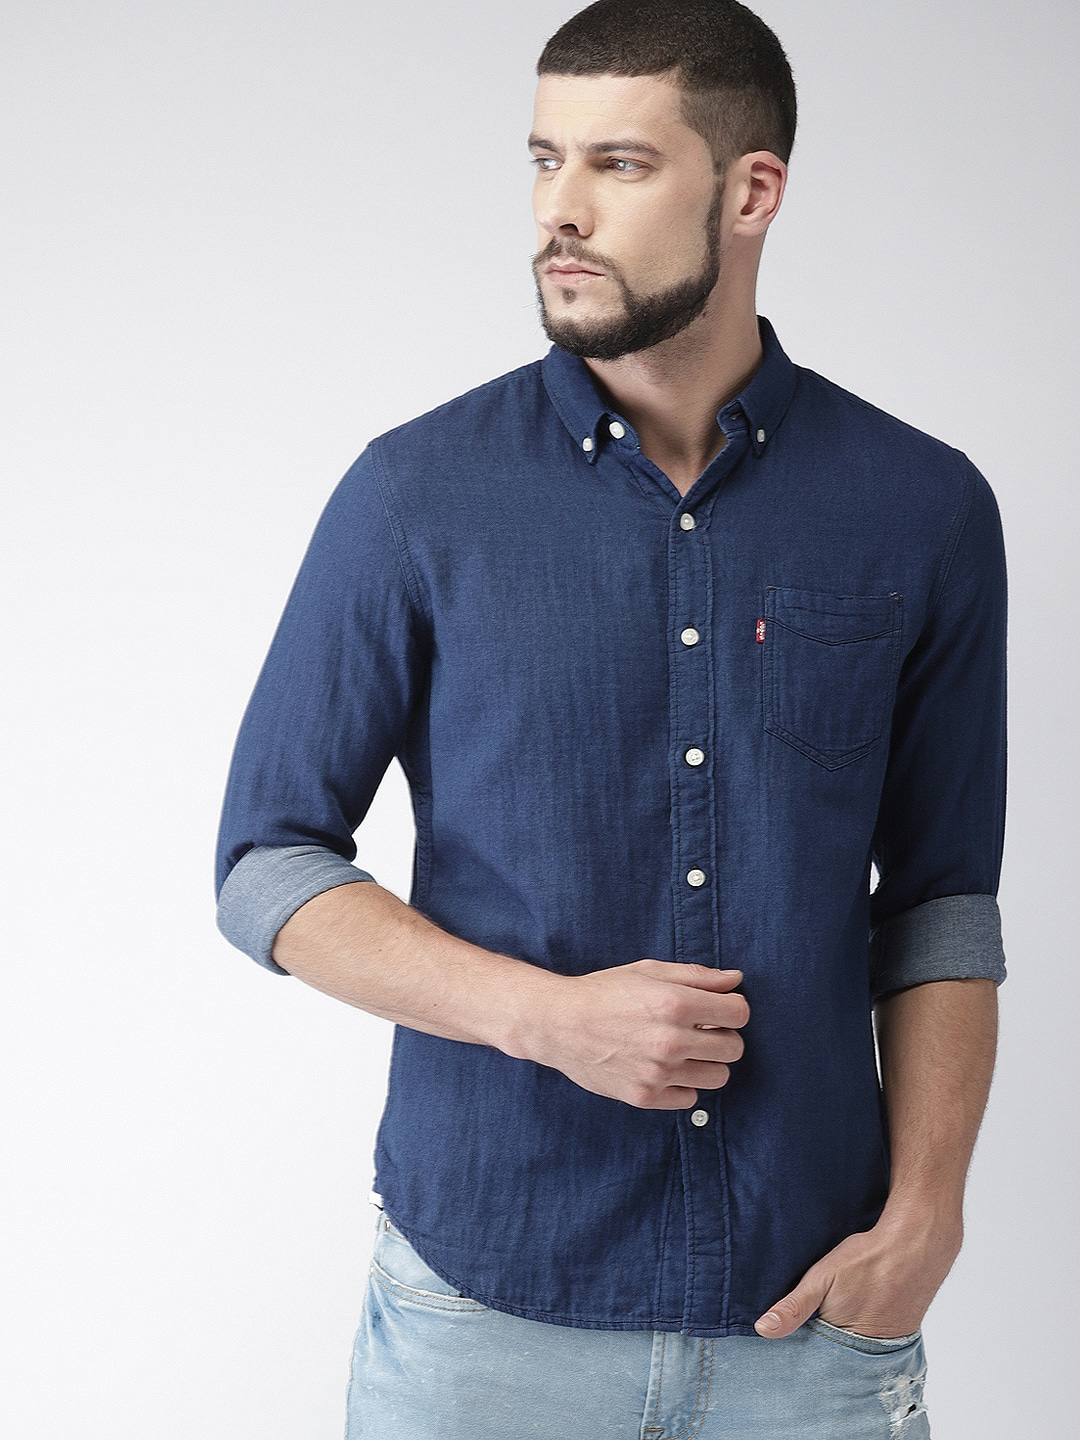 d4fbf301c6 Buy Levis Men Blue Slim Fit Solid Chambray Casual Shirt - Shirts for ...